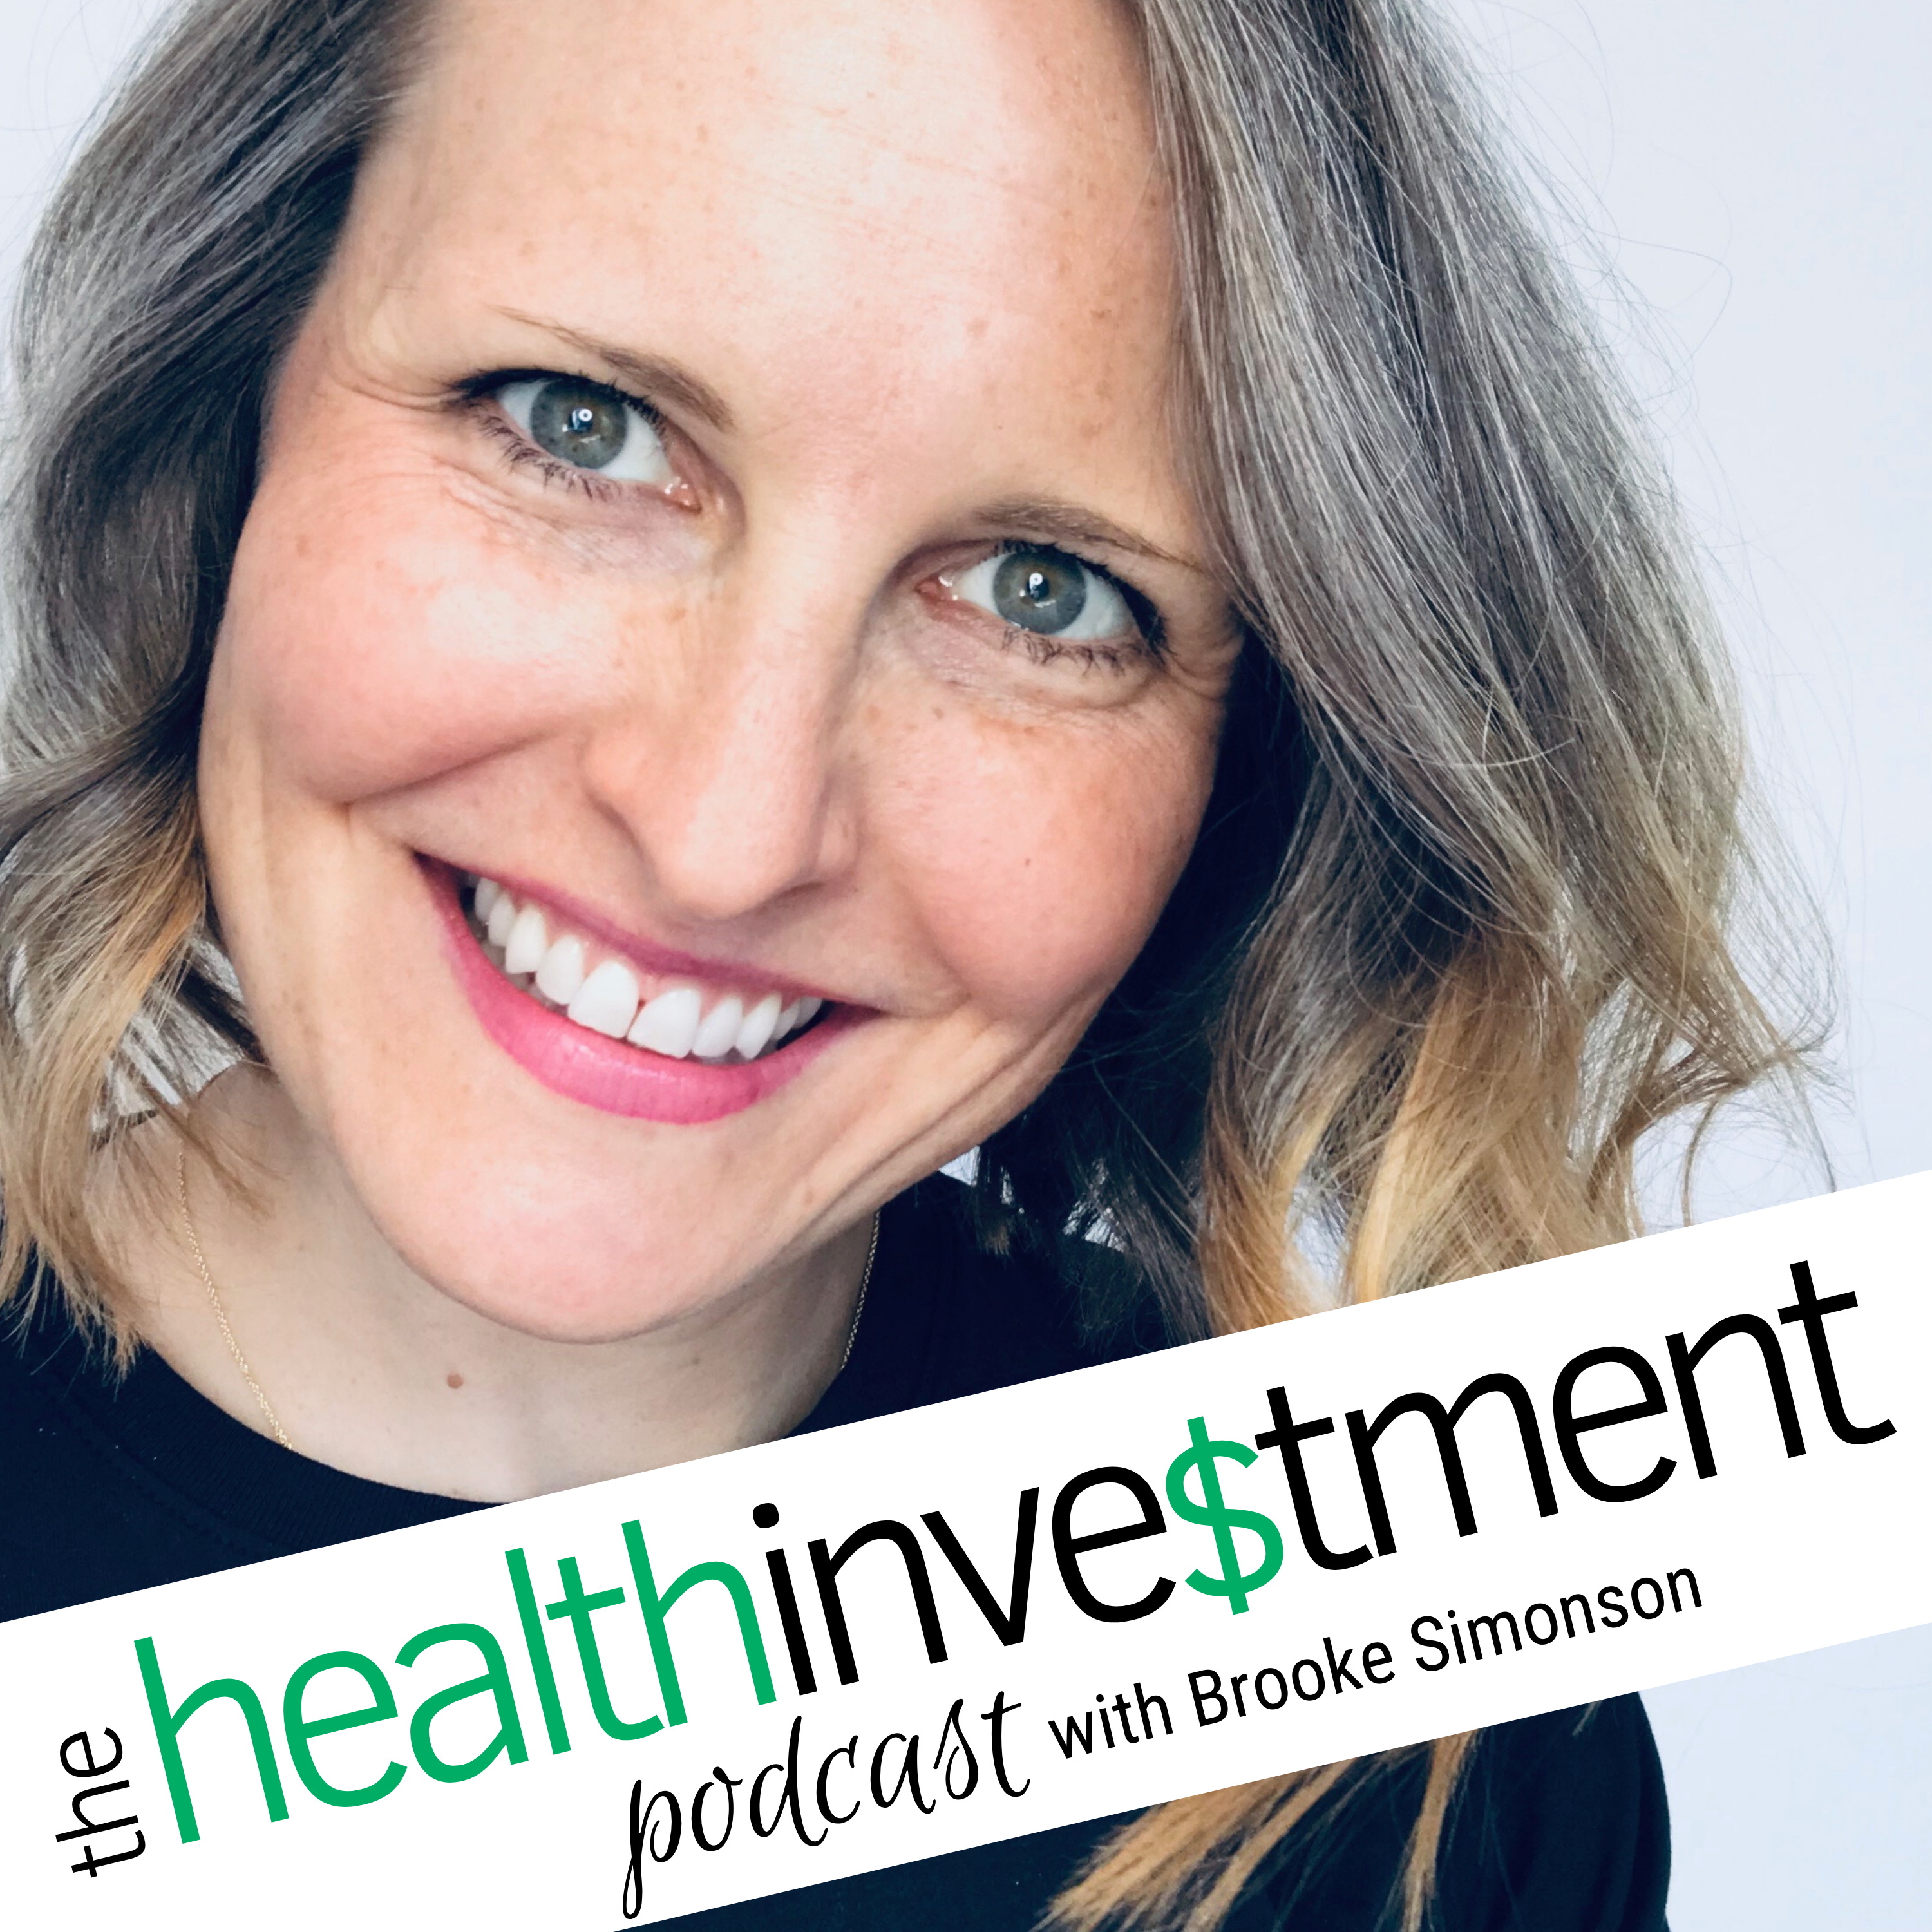 The Health Investment Podcast with Brooke Simonson